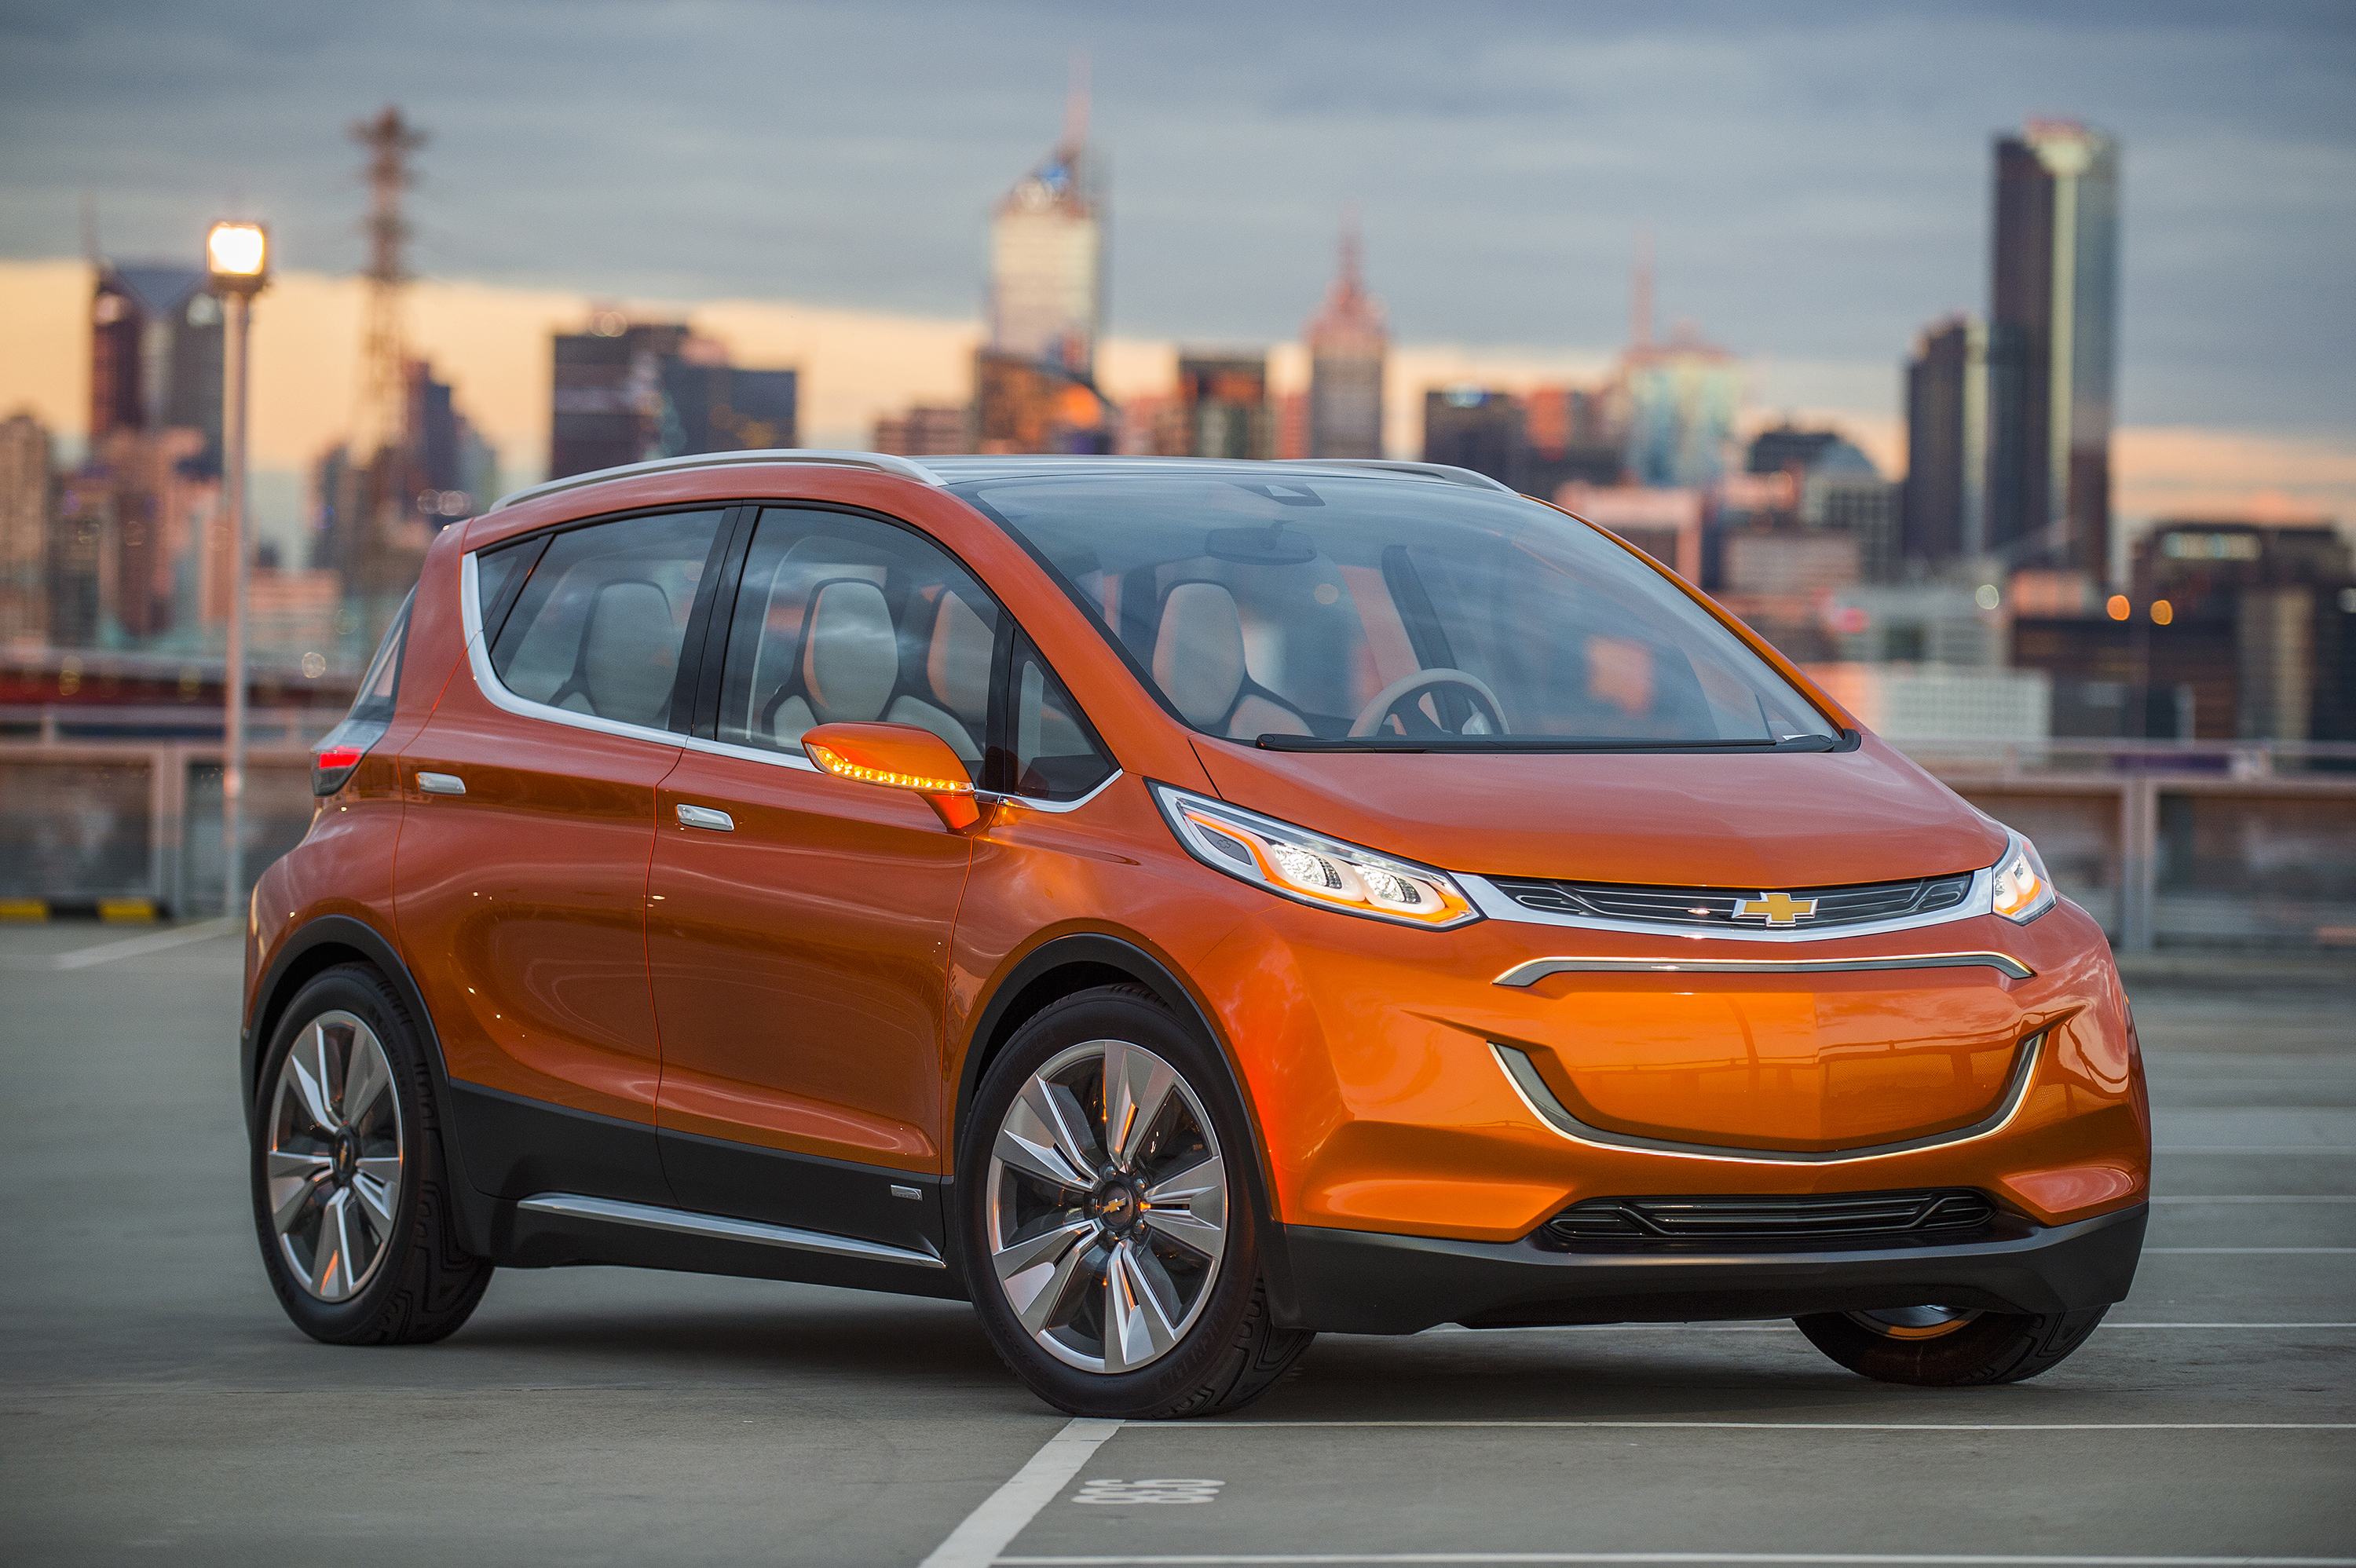 GM's Chevy Bolt electric concept car